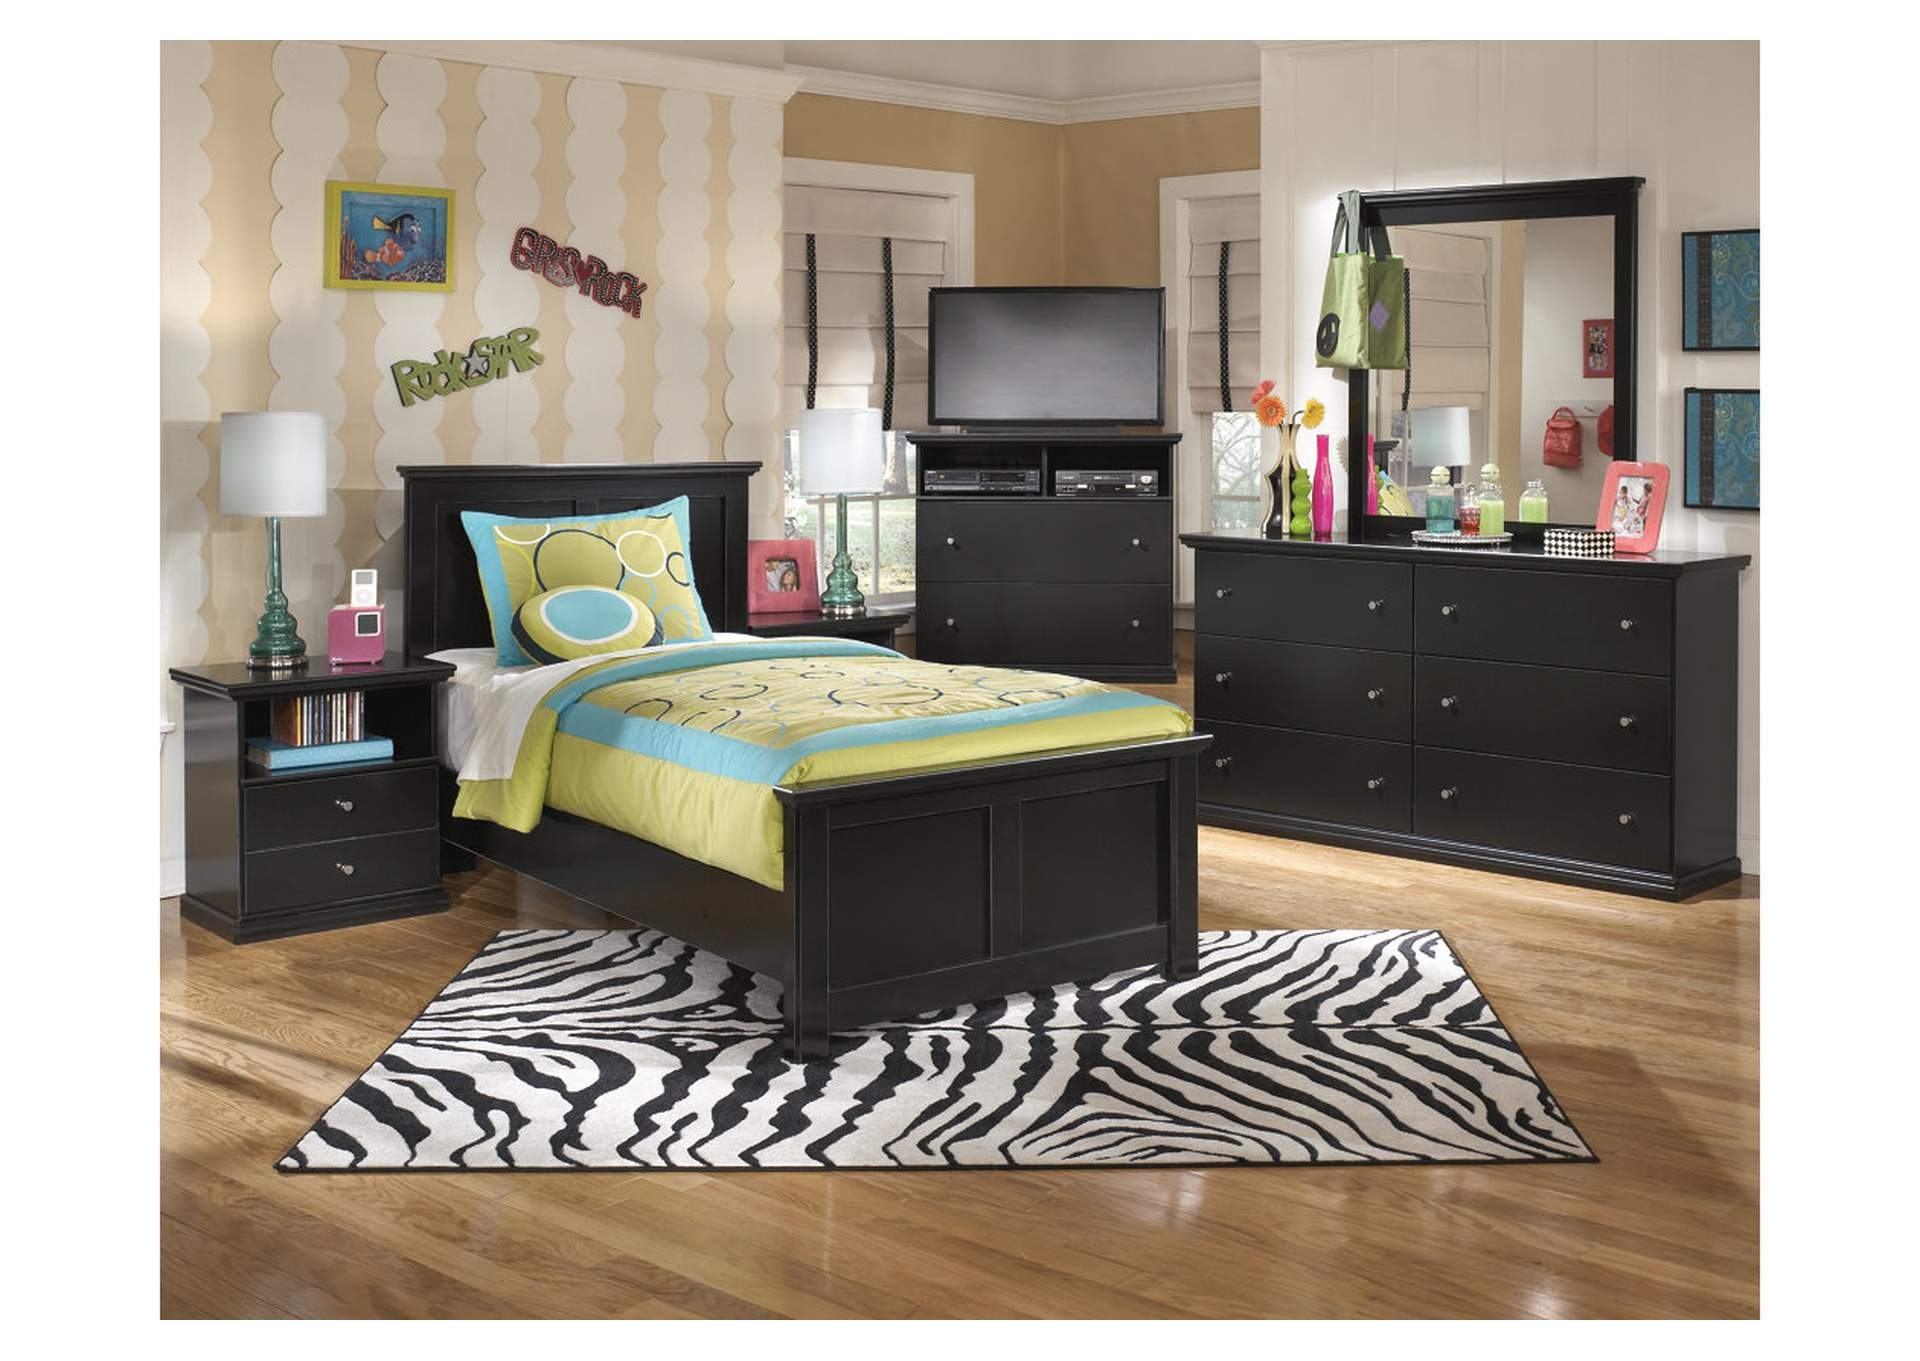 Maribel Twin Panel Bed w/Dresser, Mirror, Drawer Chest & 2 Nightstands,Signature Design By Ashley